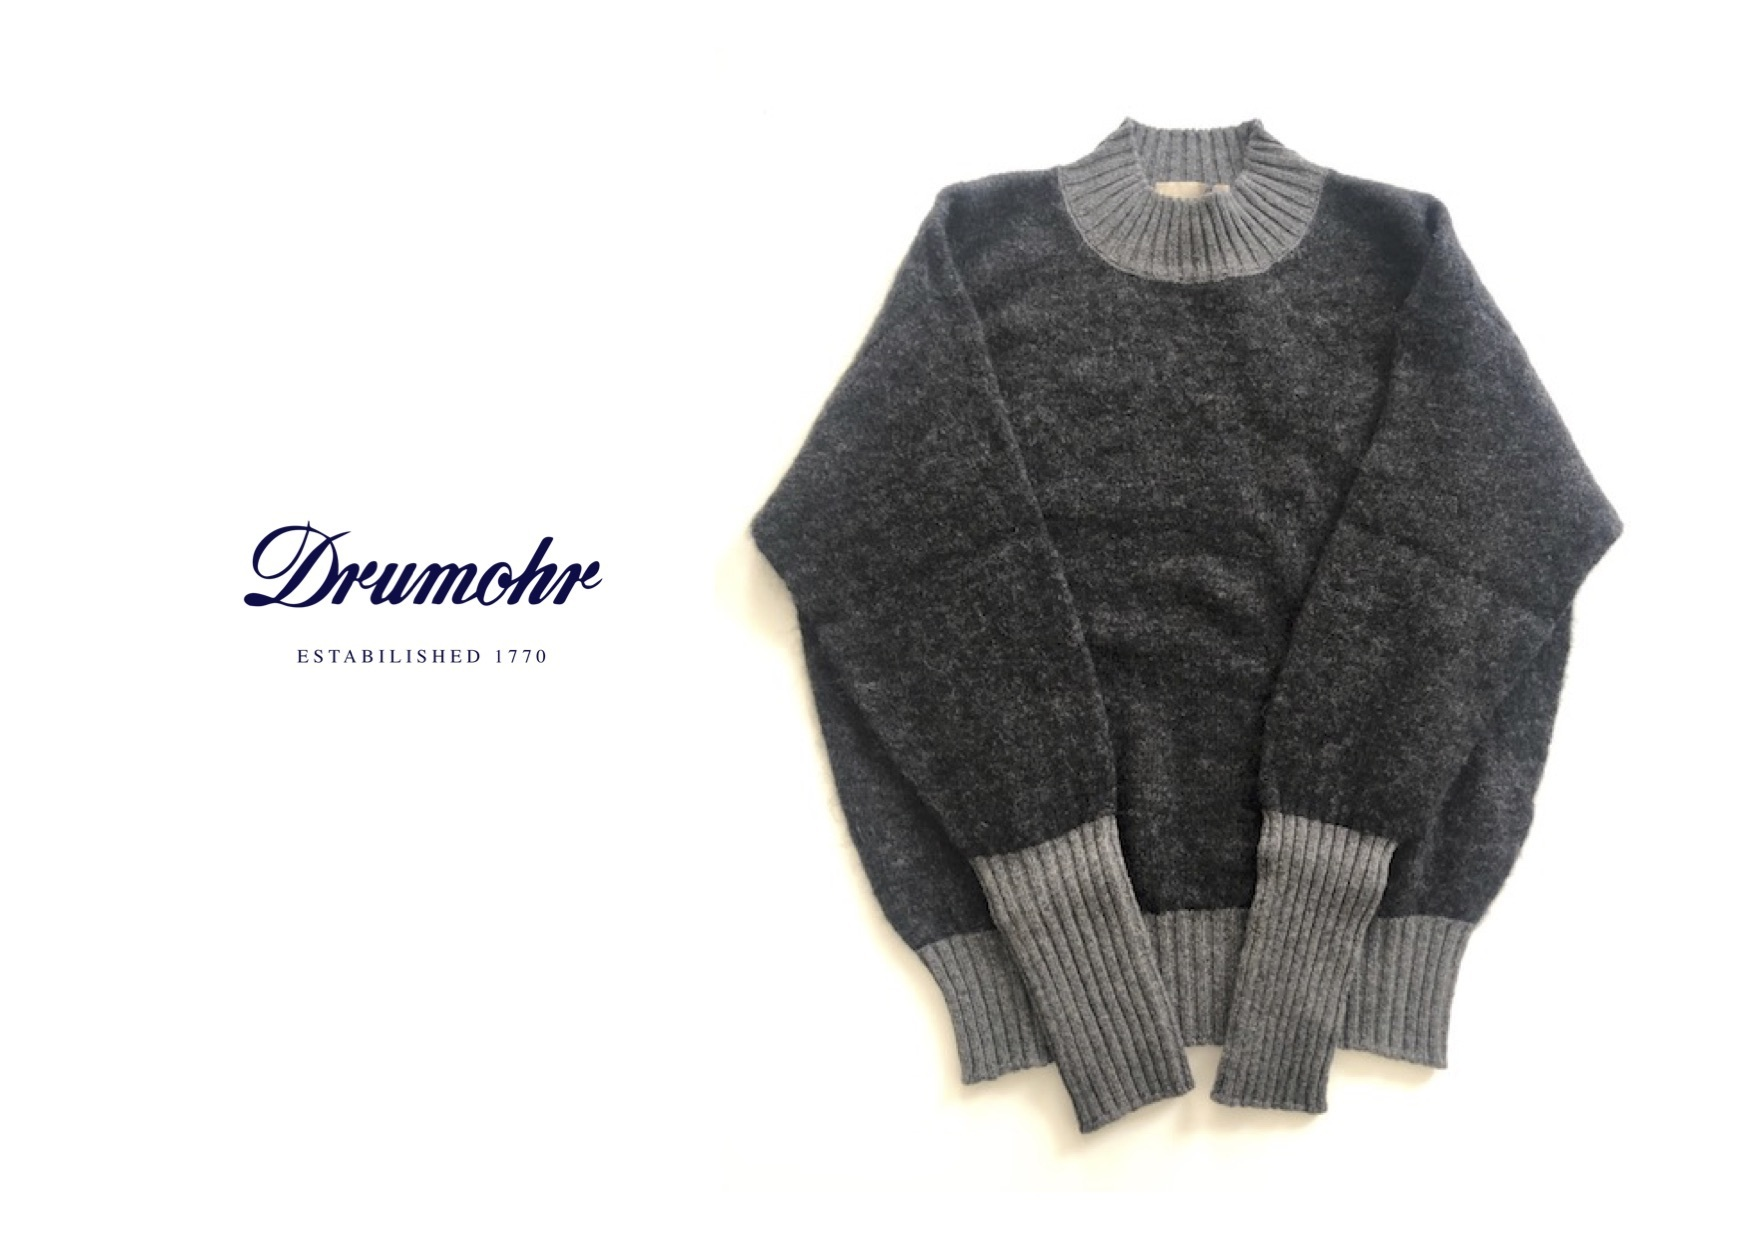 shop drumohr clothing